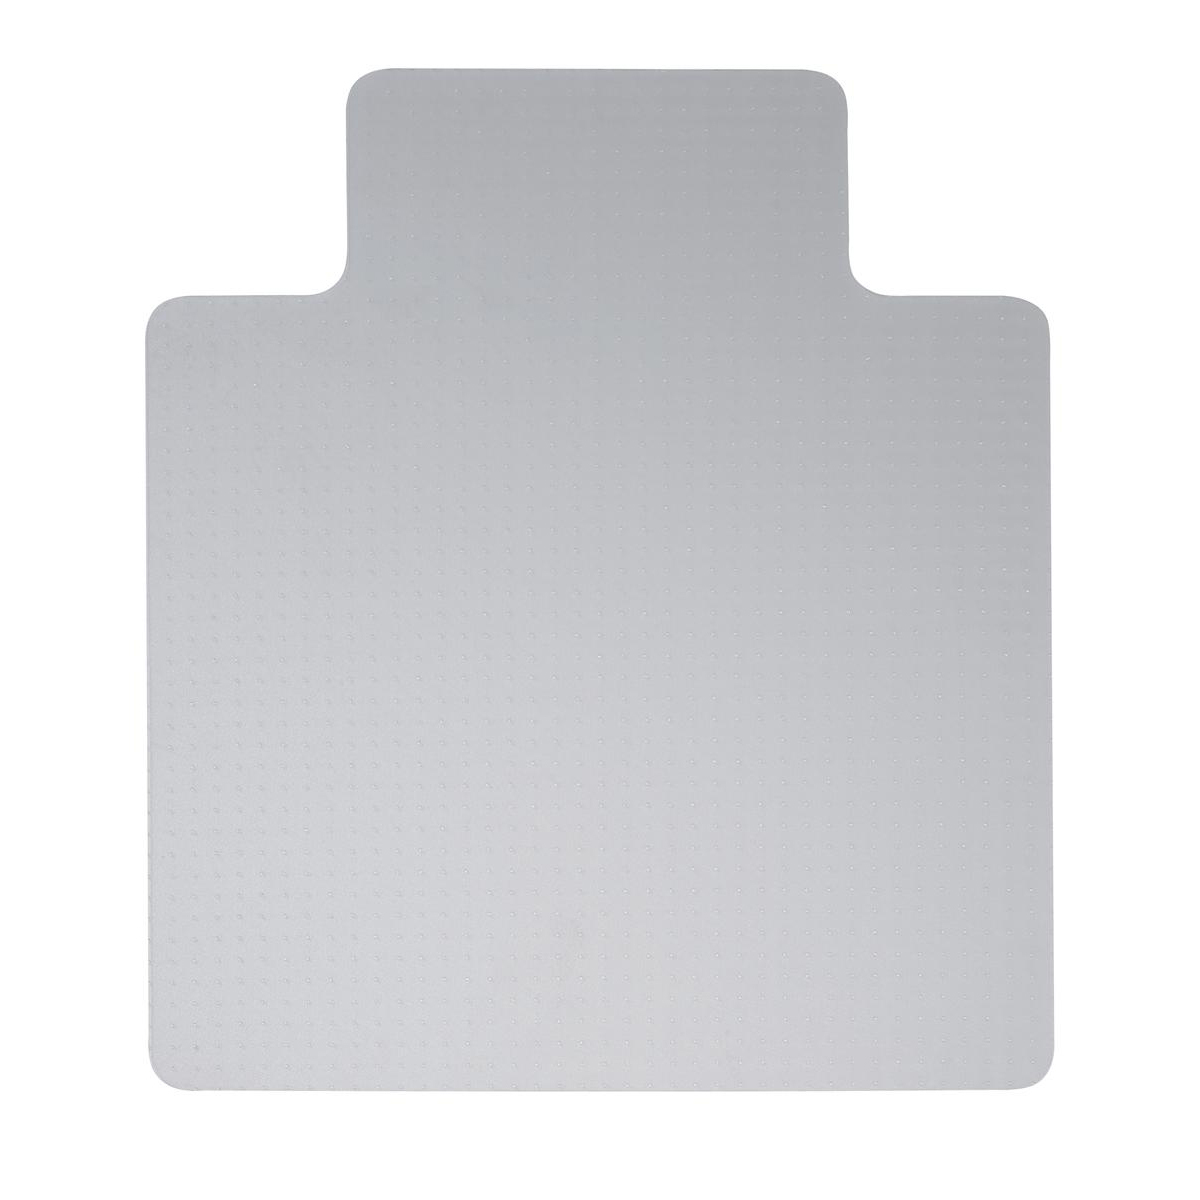 For Hard Floors 5 Star Office Chair Mat For Hard Floors Polycarbonate Chair Mat Lipped 890x1190mm Clear